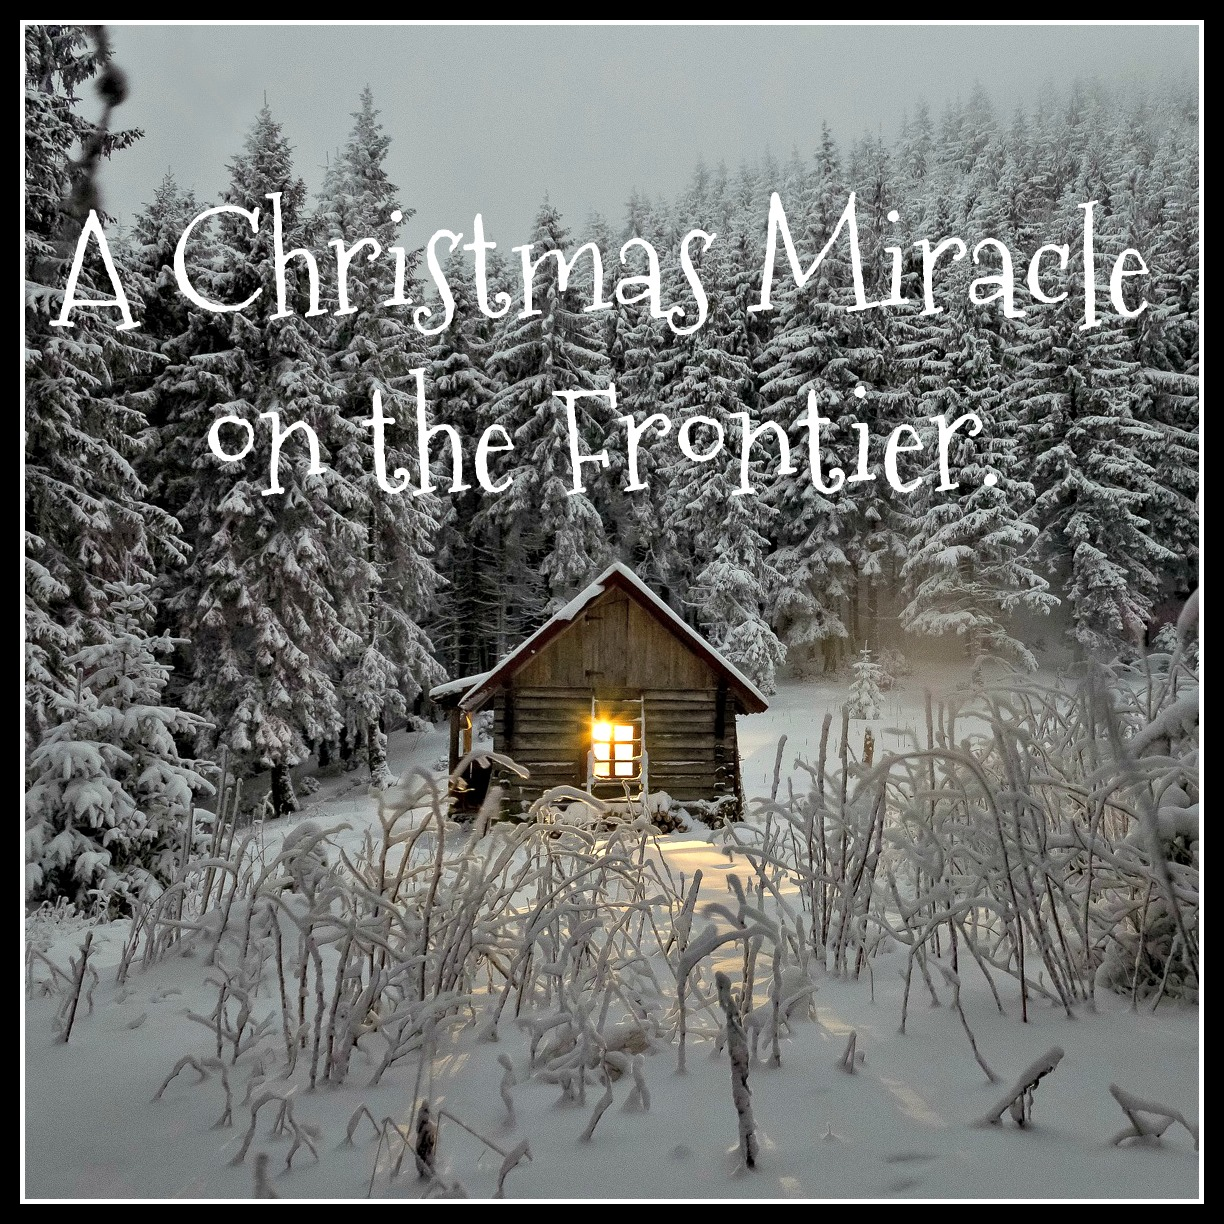 a christmas miracle 'a christmas miracle' is a charming tale that shows how dreams can come true on christmas read this and other christmas stories.